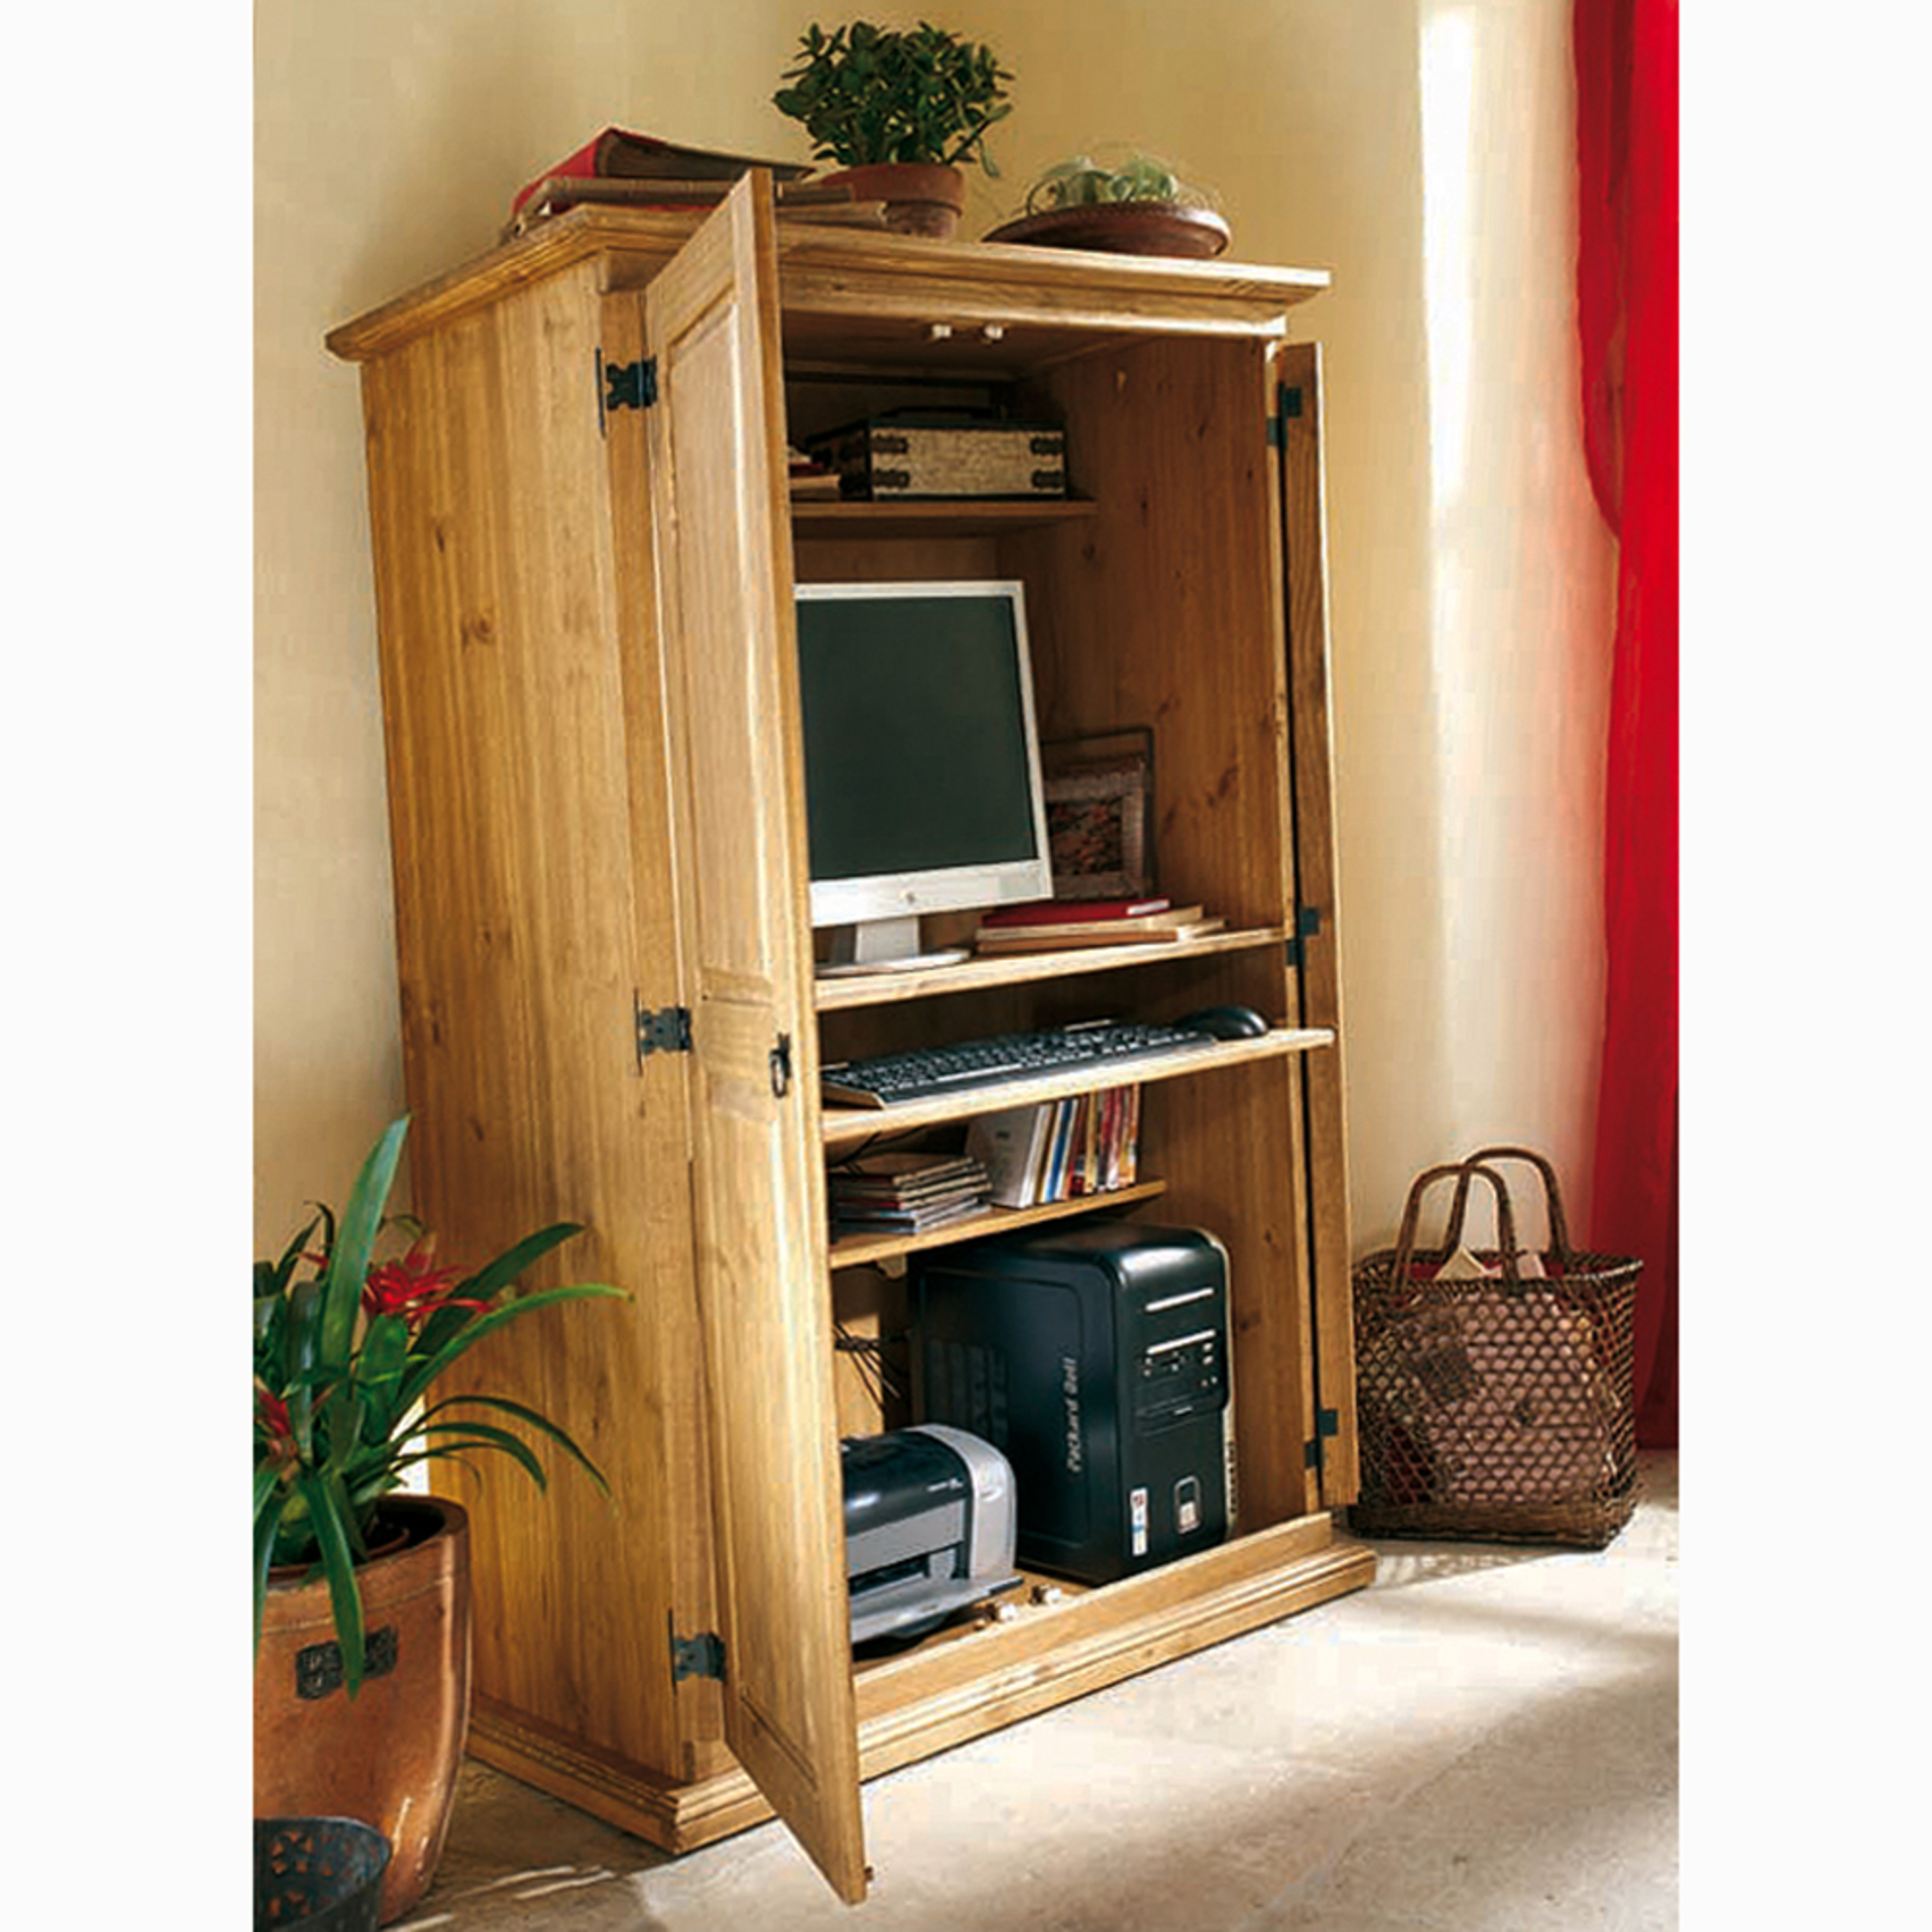 Meuble Tv Armoire - Meuble Tv Ou Armoire Micro Informatique El Patio Anniversaire 40 [mjhdah]https://images-na.ssl-images-amazon.com/images/I/81l5YU4SFPL._SL1500_.jpg